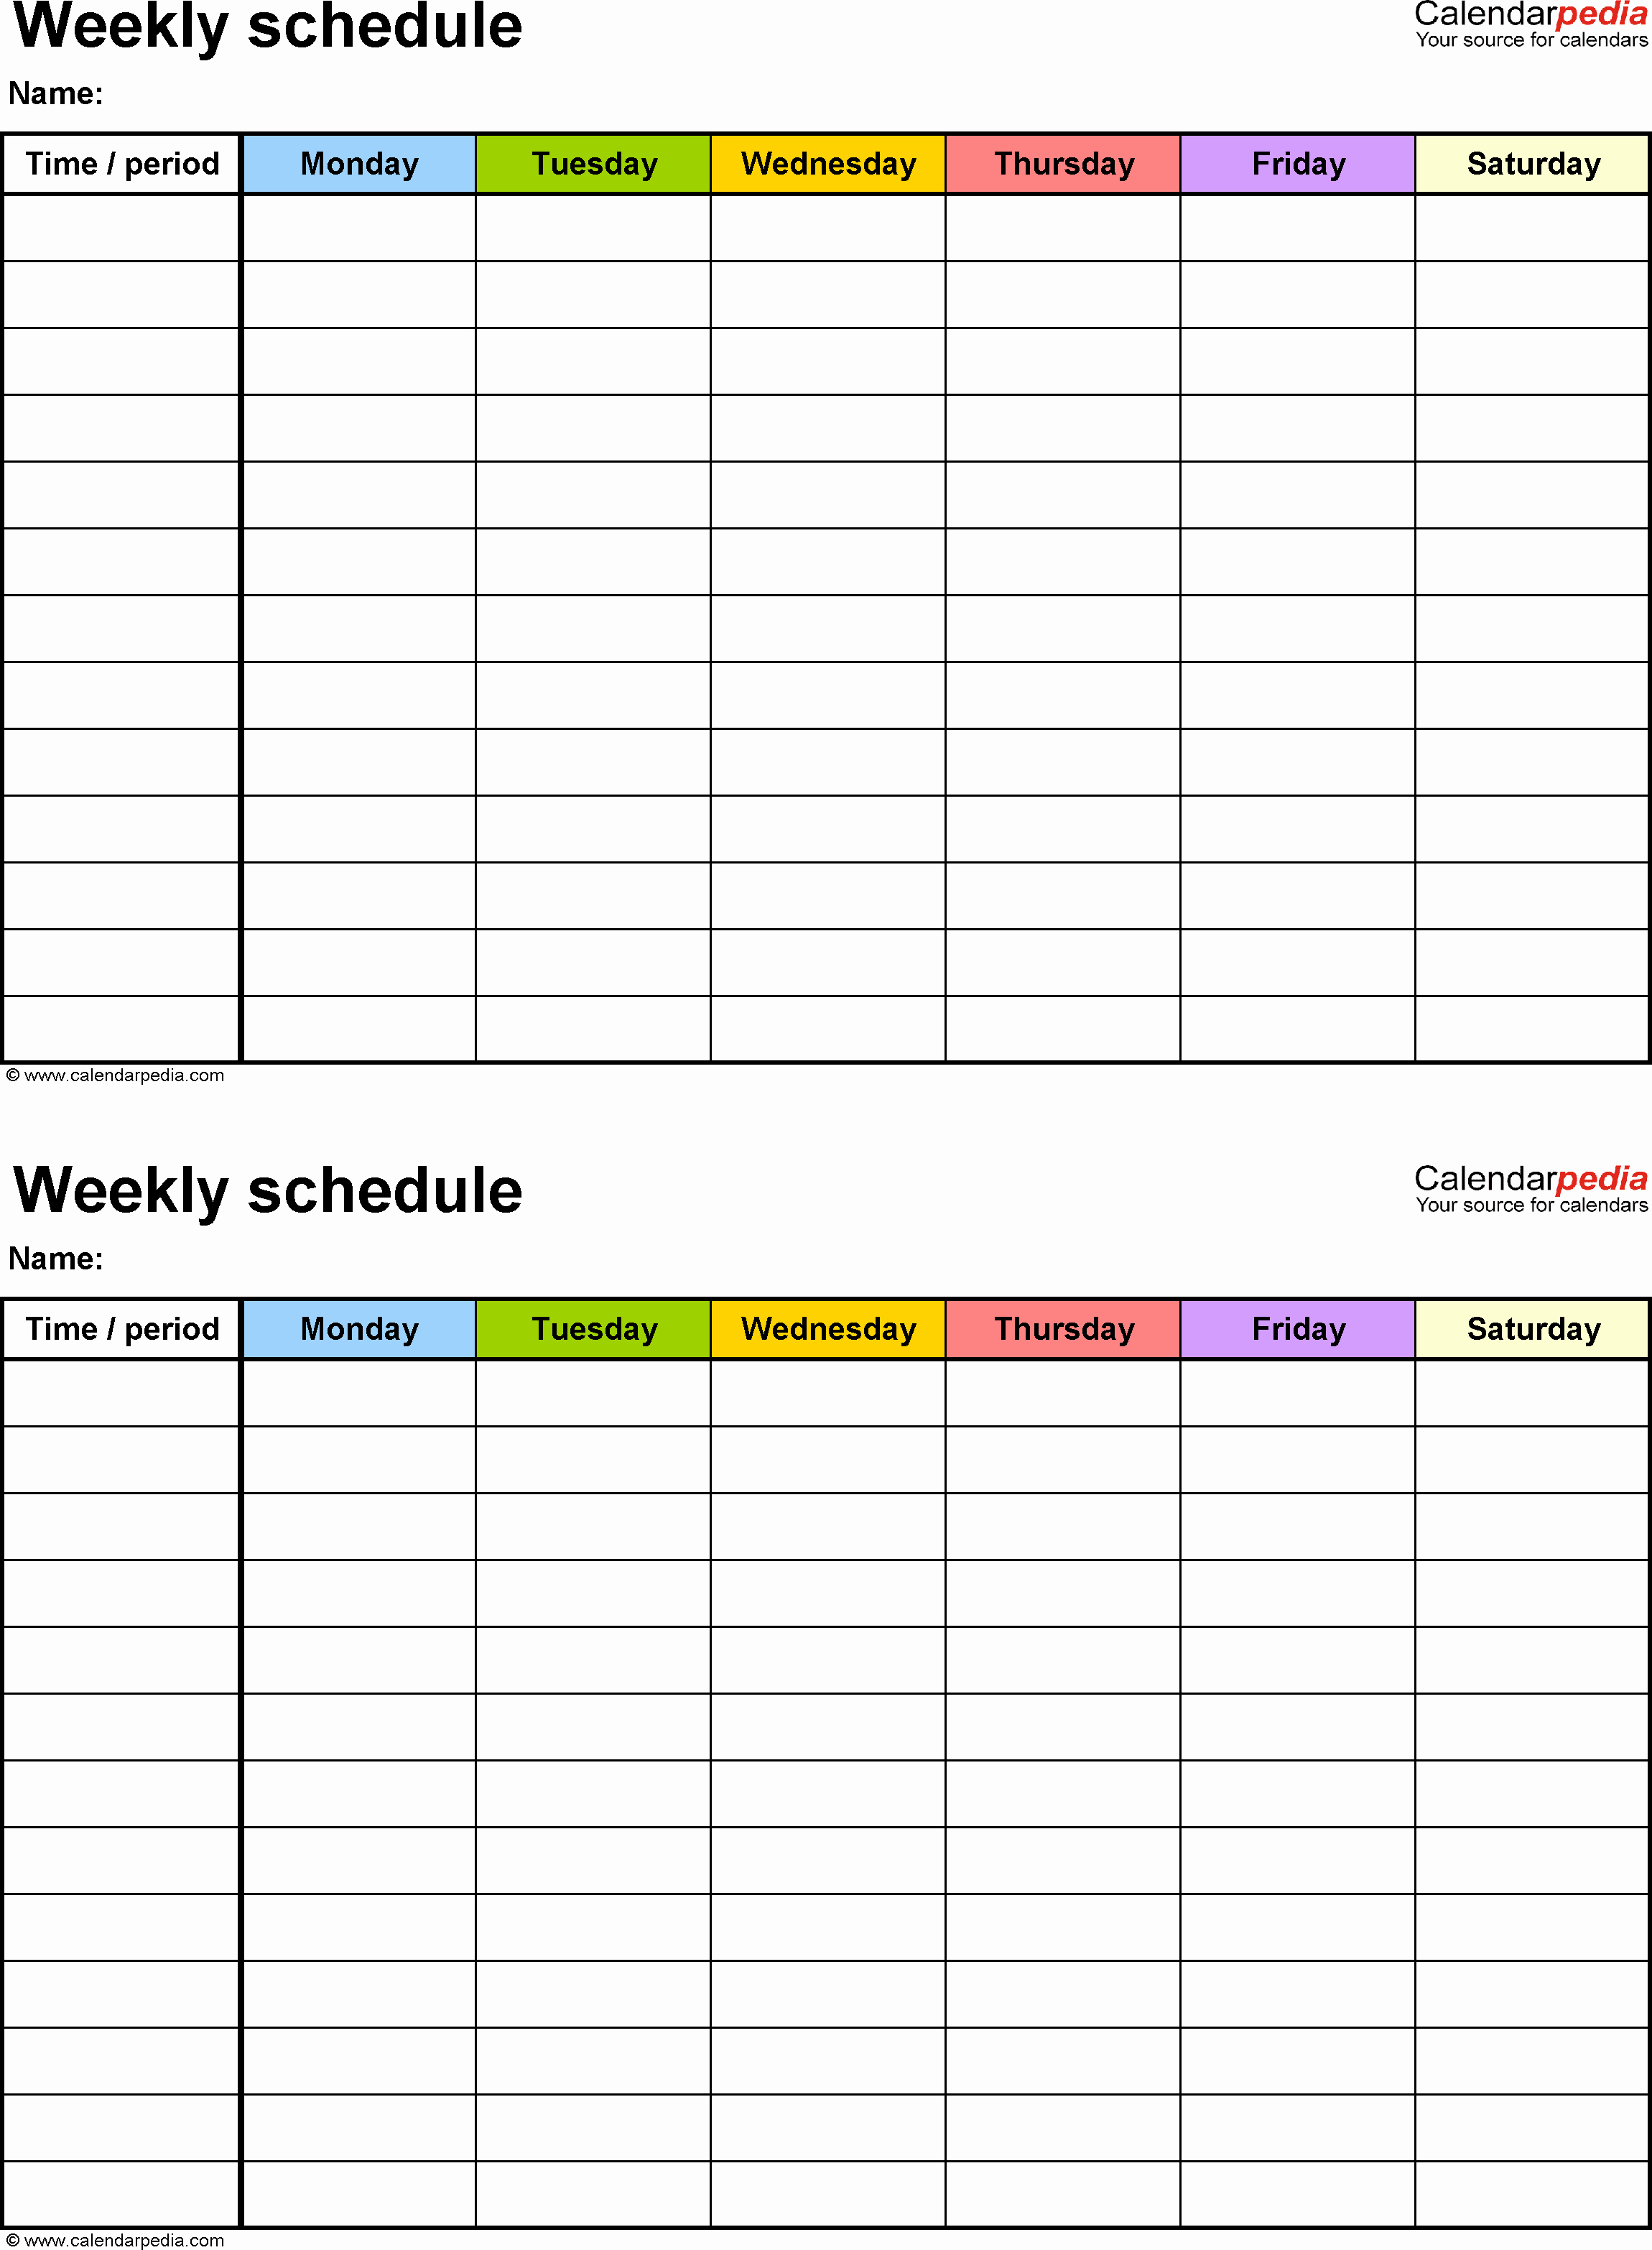 Day Planner Template Word Elegant Weekly Schedule Template for Word Version 9 2 Schedules